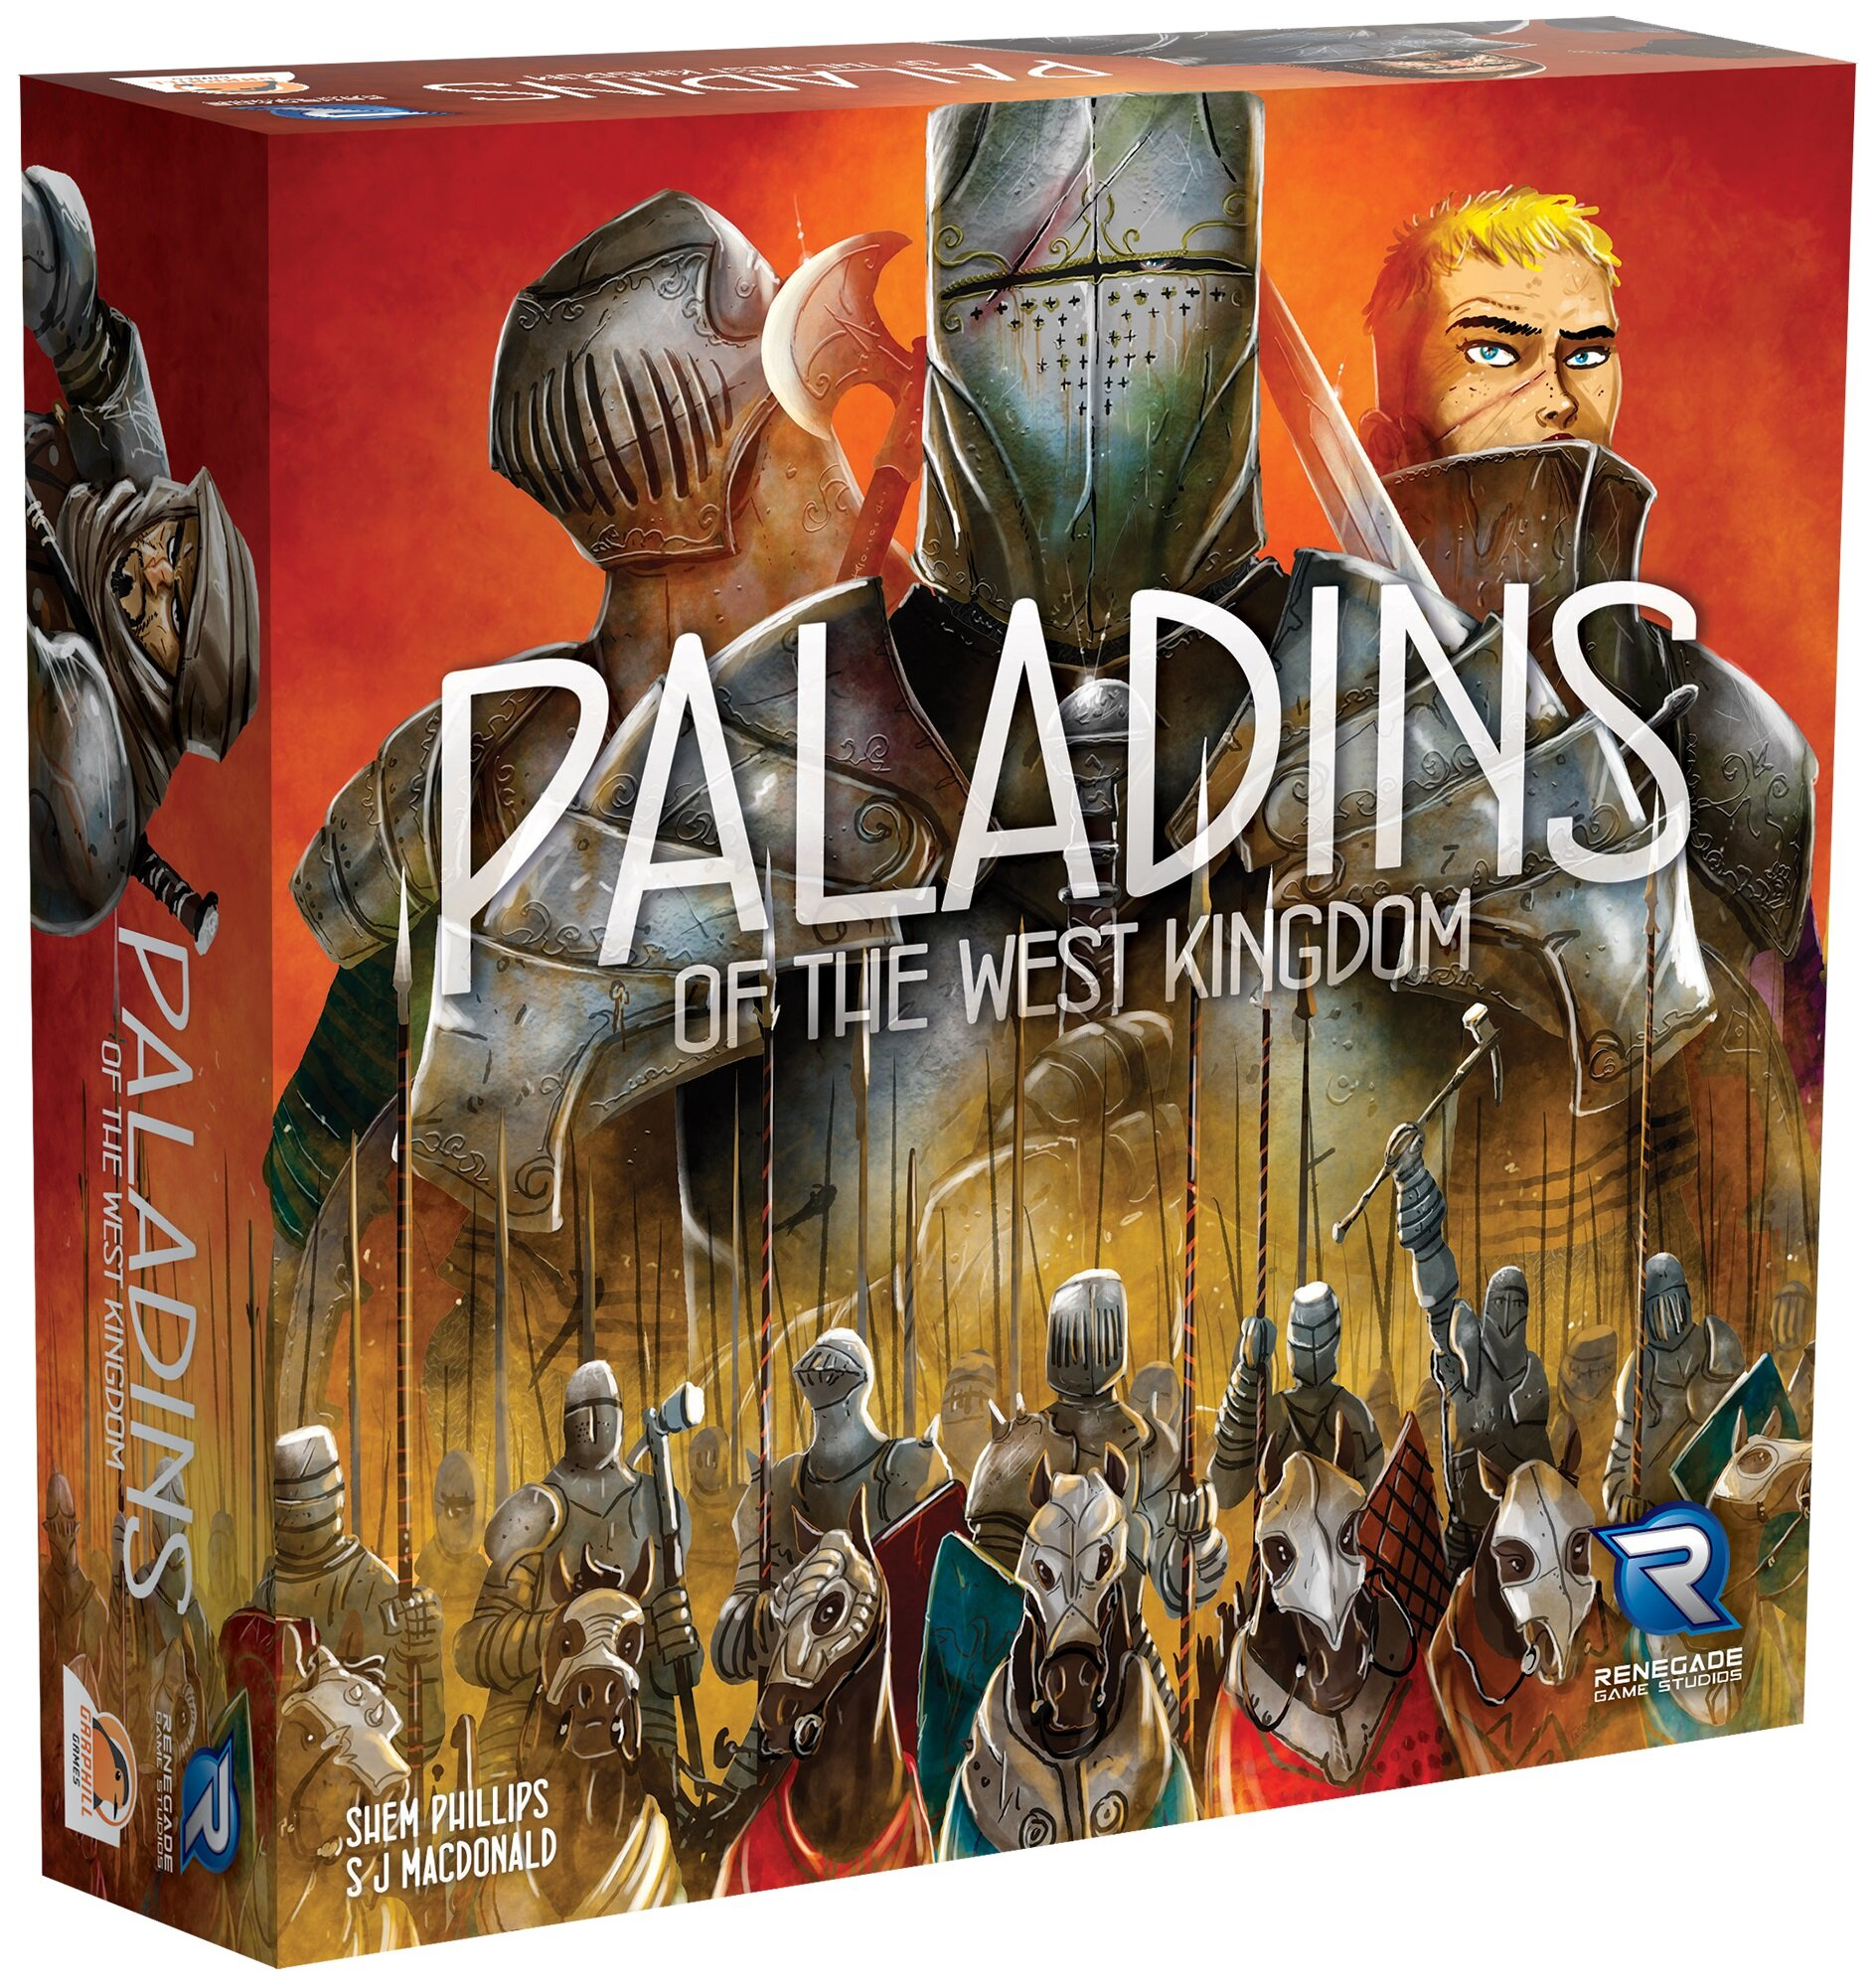 one-eyed-jacques-paladins-of-the-west-kingdom-board-game.jpeg